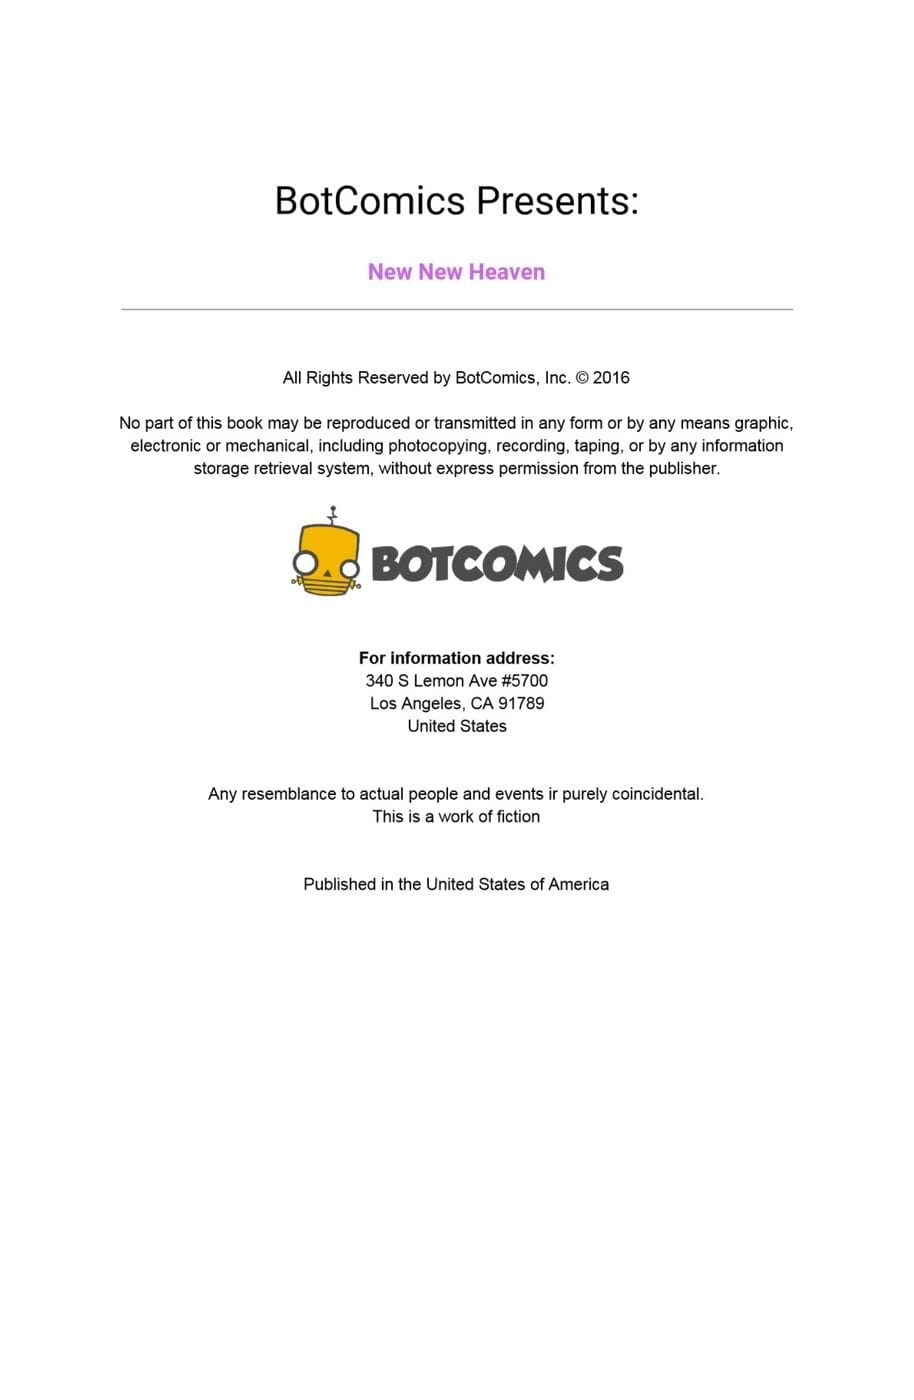 Bot- New New Heaven Issue 3